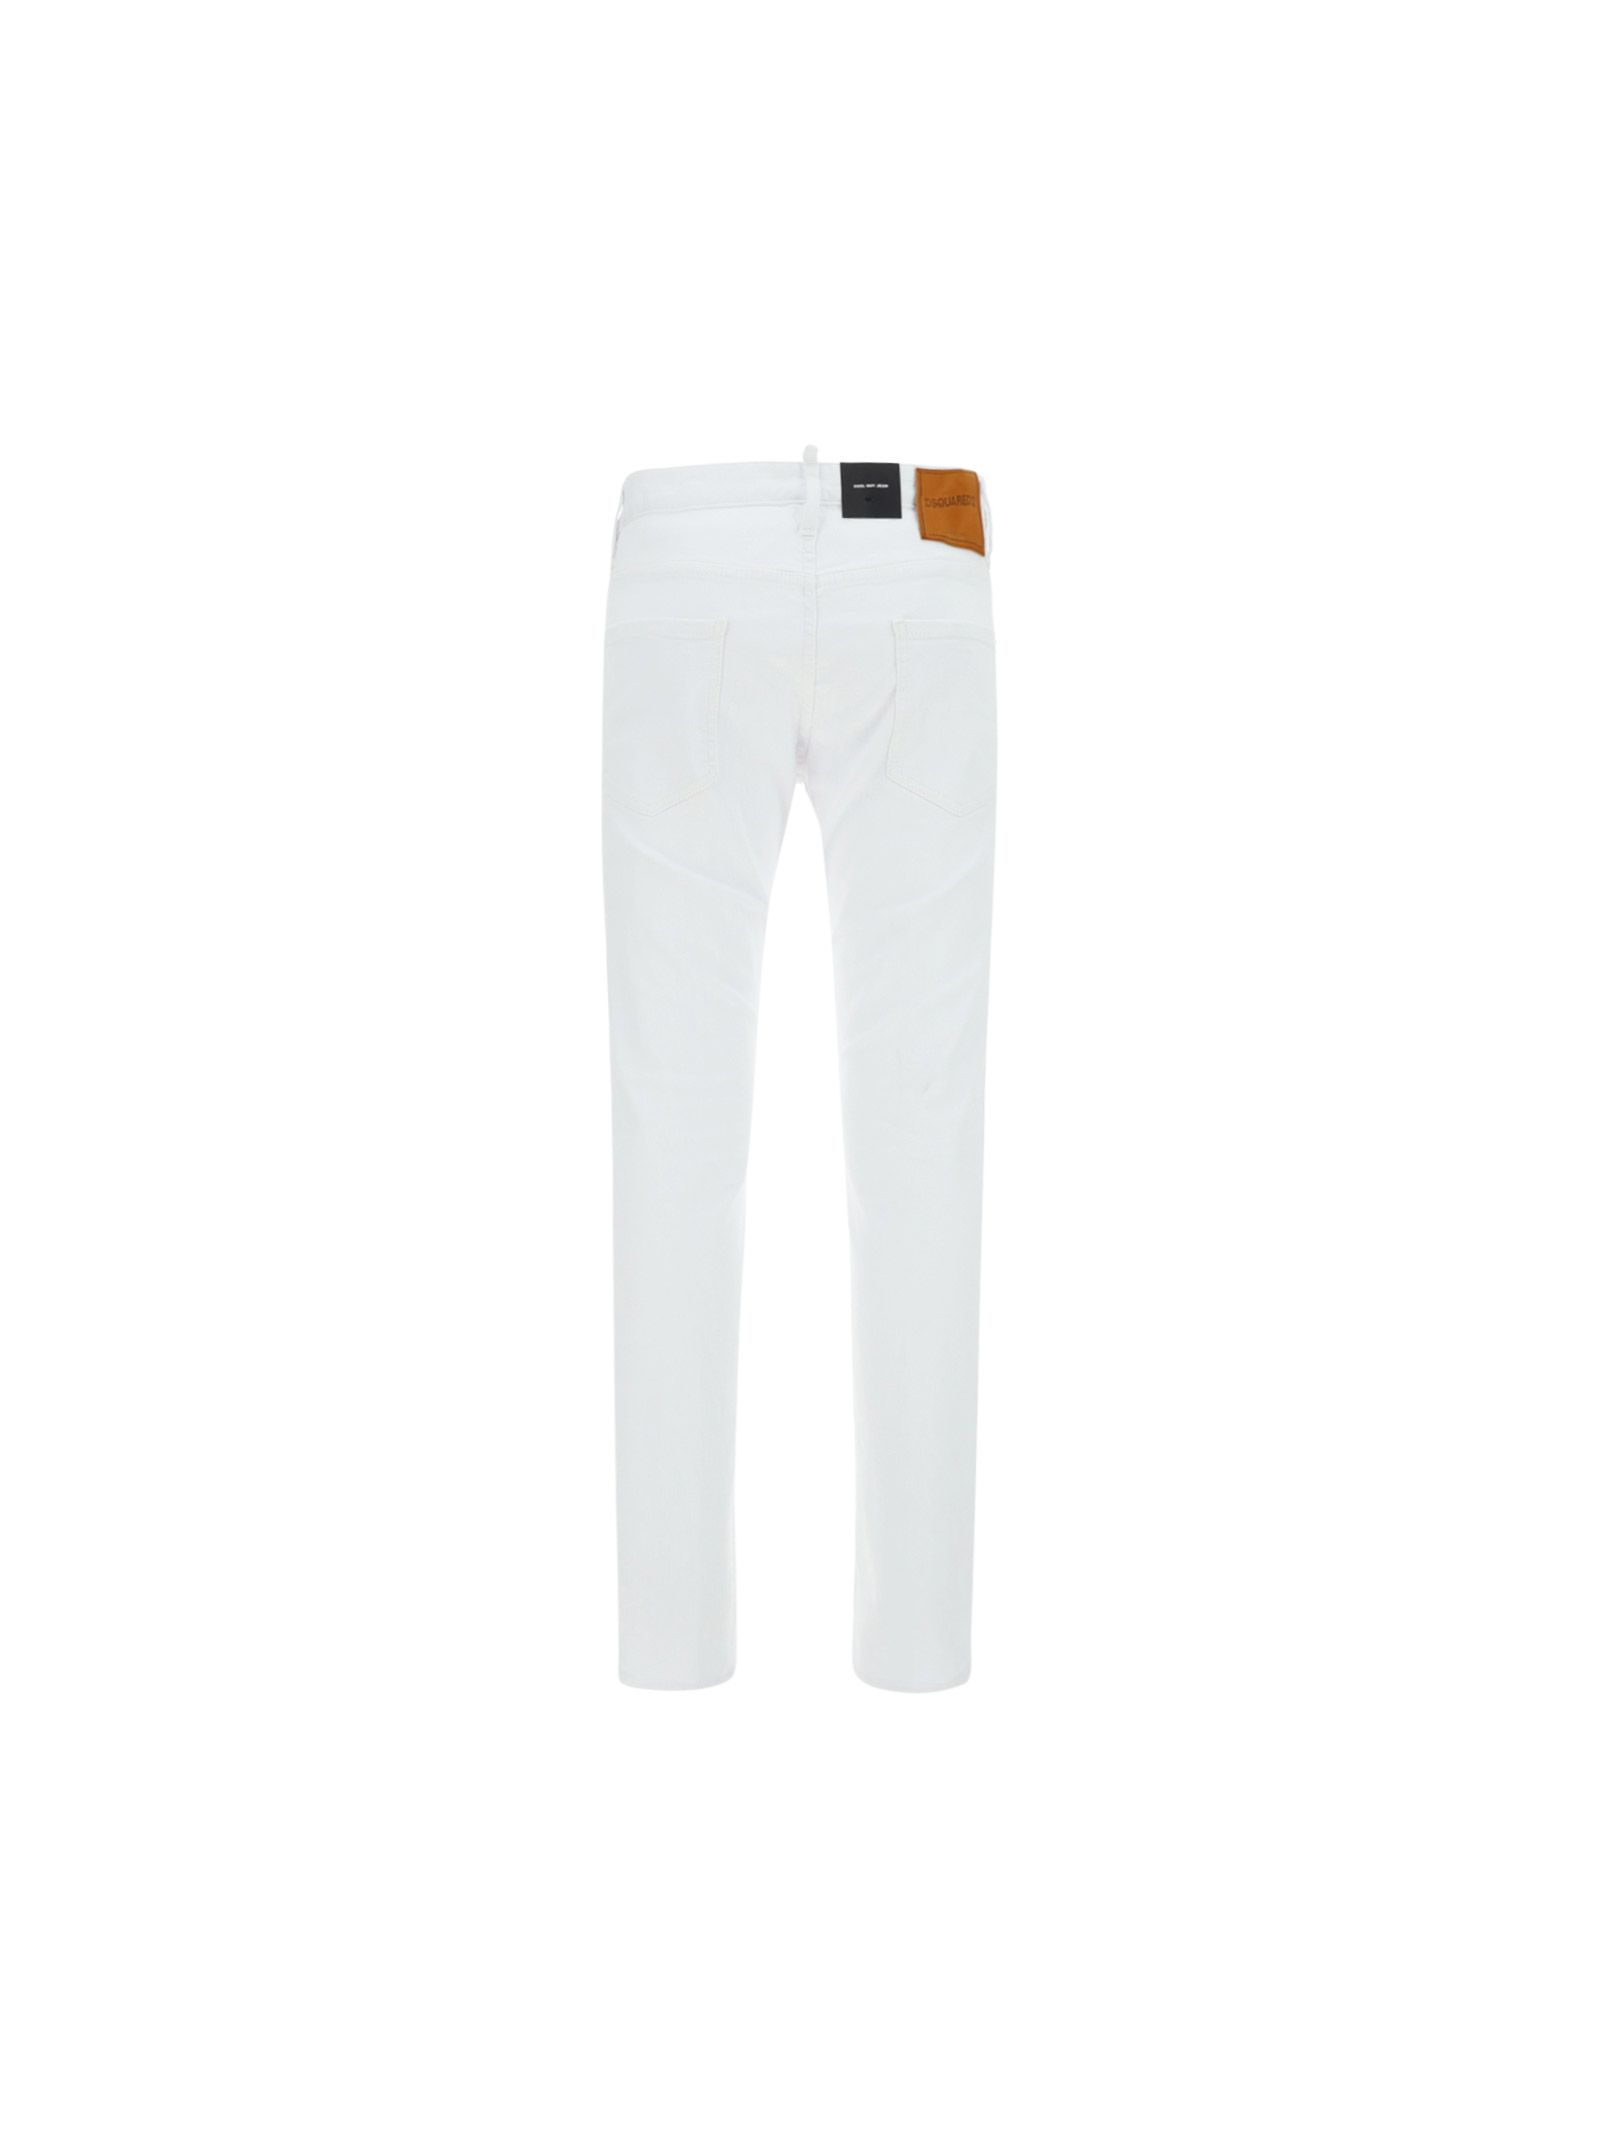 DSQUARED2 Cottons DSQUARED2 MEN'S WHITE OTHER MATERIALS JEANS